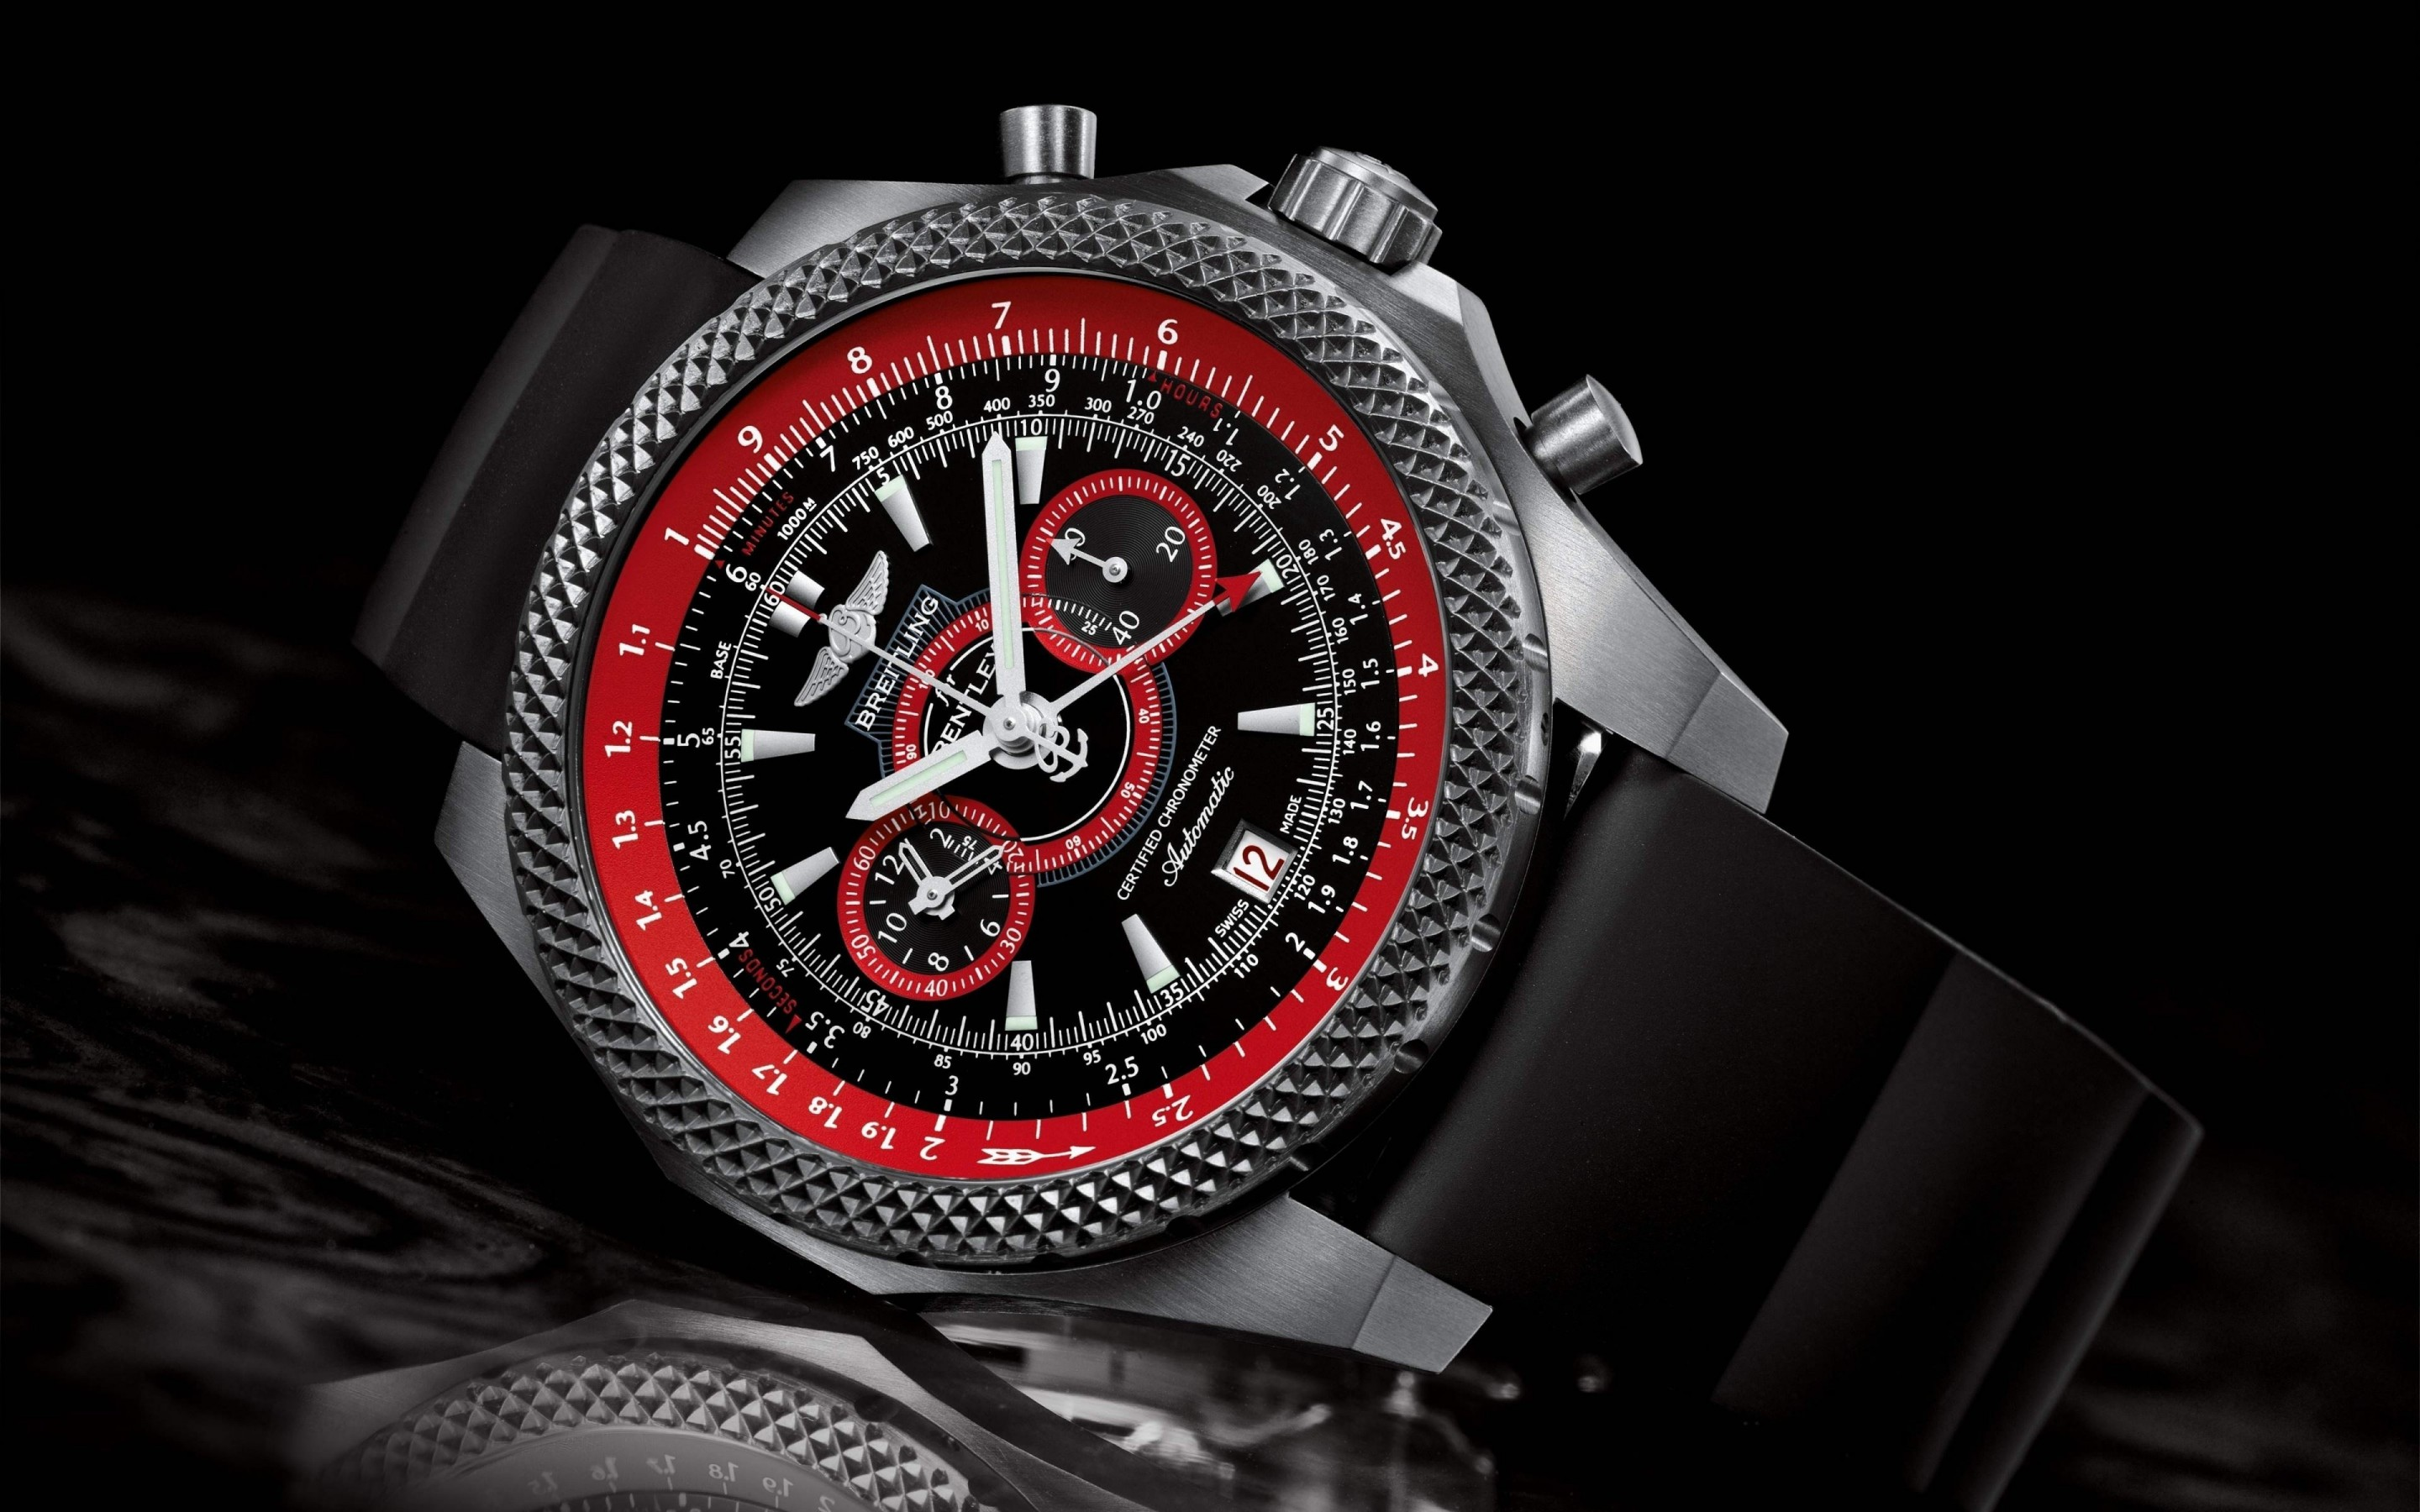 Breitling Watch Wallpaper for Desktop 2880x1800